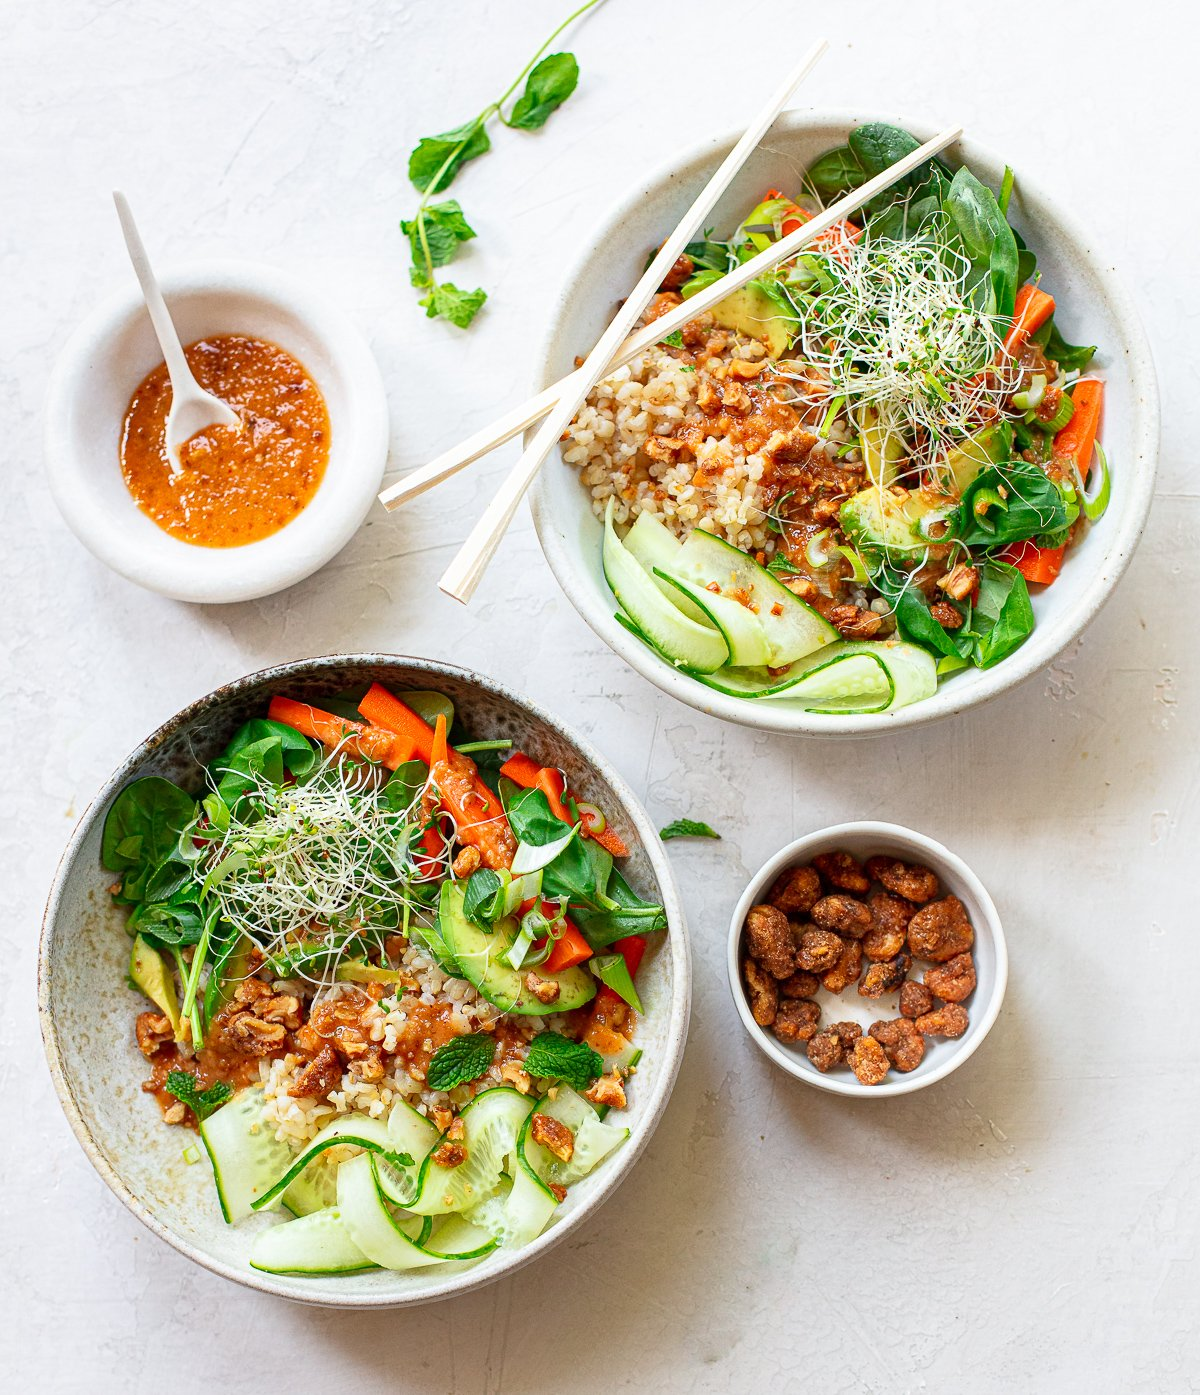 Two gray bowls with chopsticks, full of rice salad with avocado, cucumber, carrots and walnut sauce.